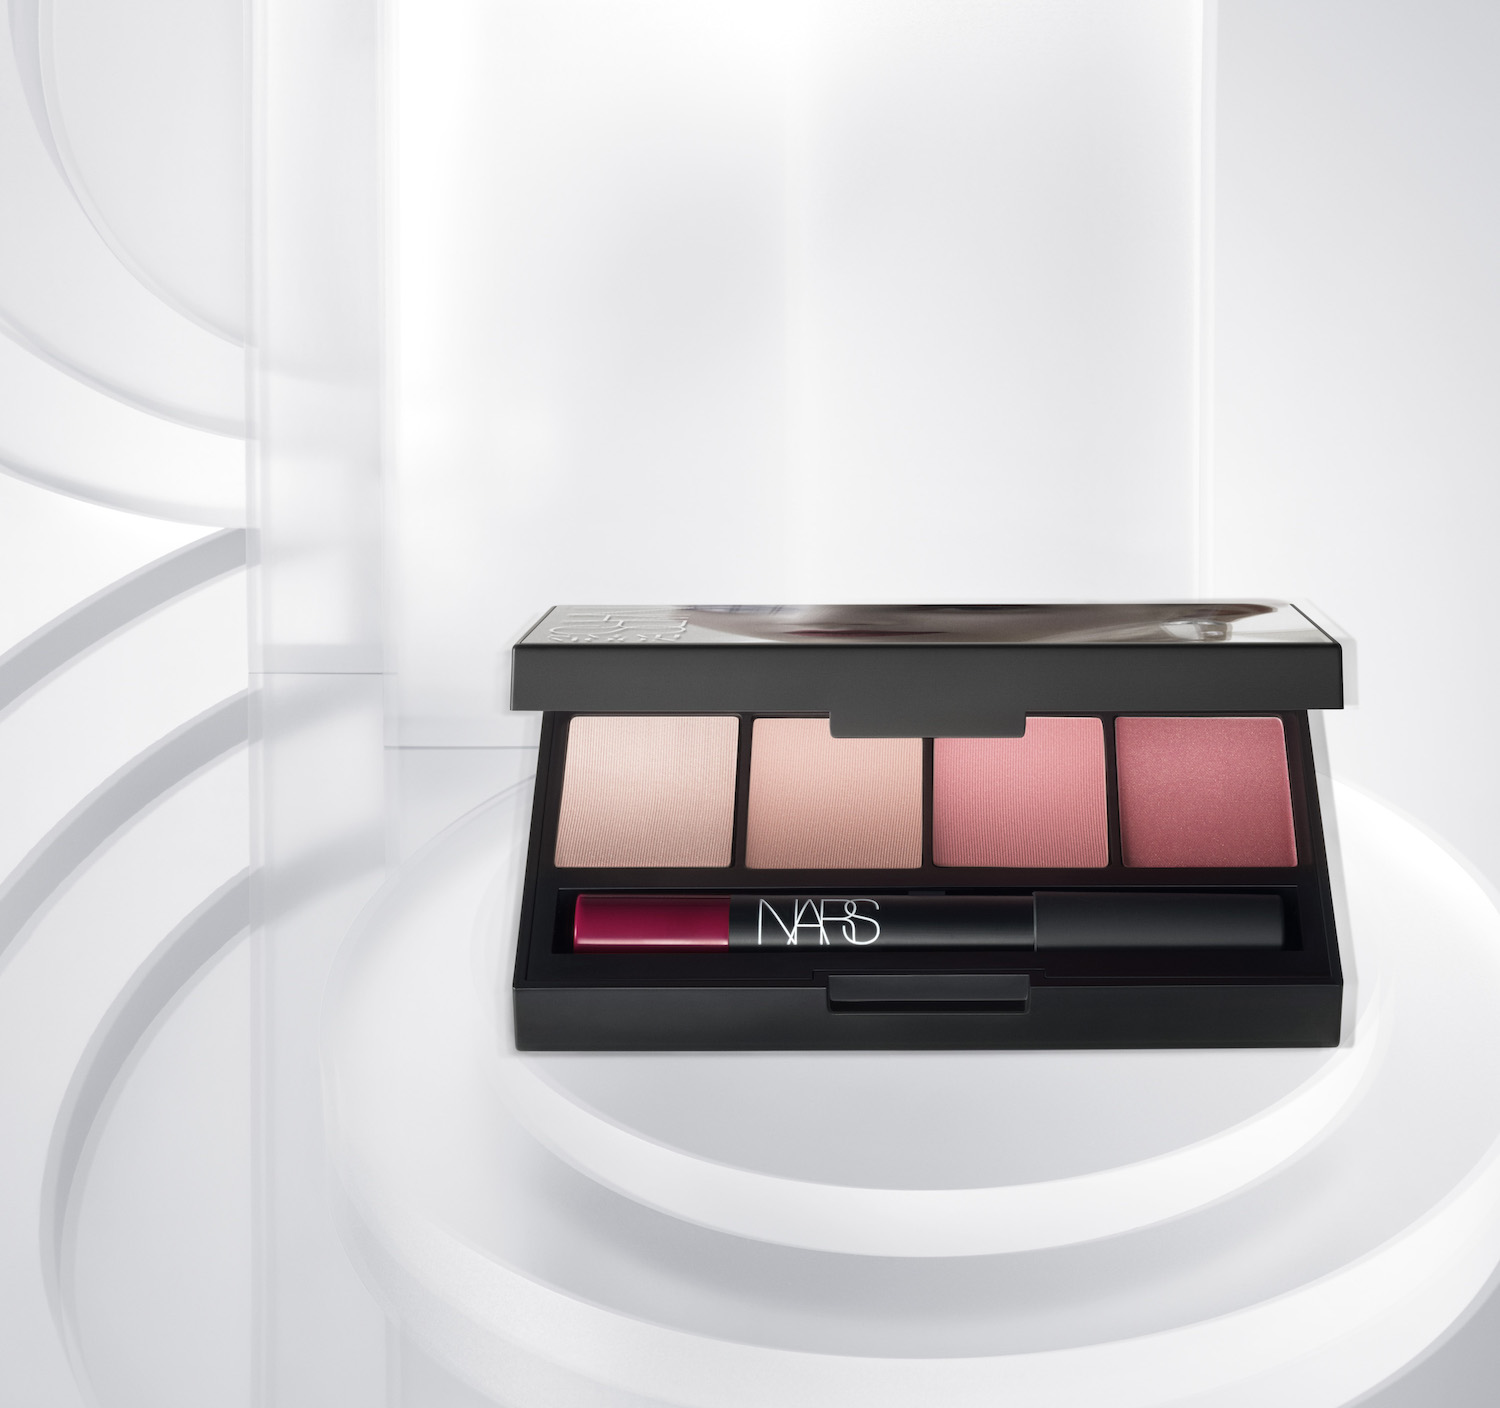 sarah-moon-for-nars-holiday-collection-5